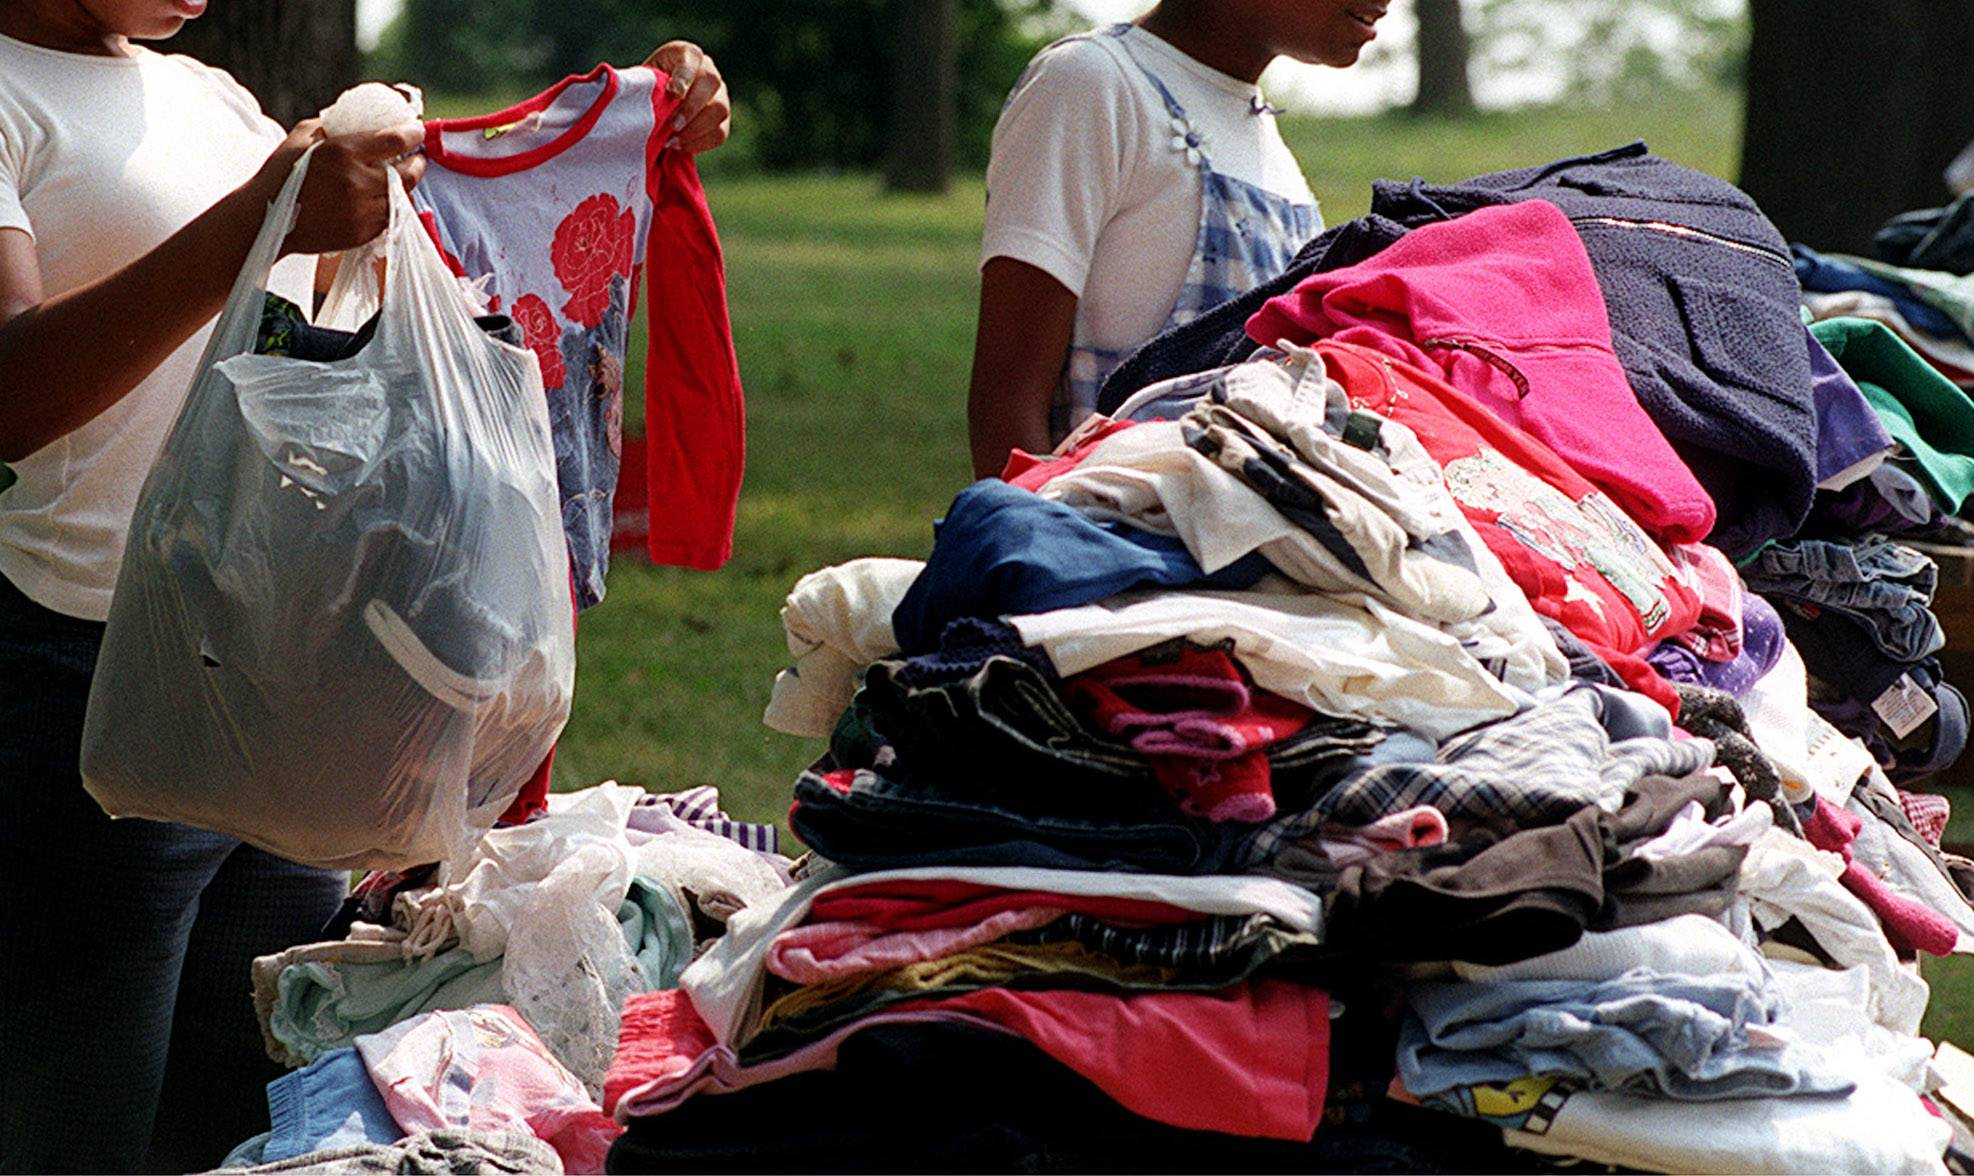 The Solid Waste Agency of Lake County will launch a recycling initiative for textiles. Officials say 85 percent of the materials wind up in landfills.